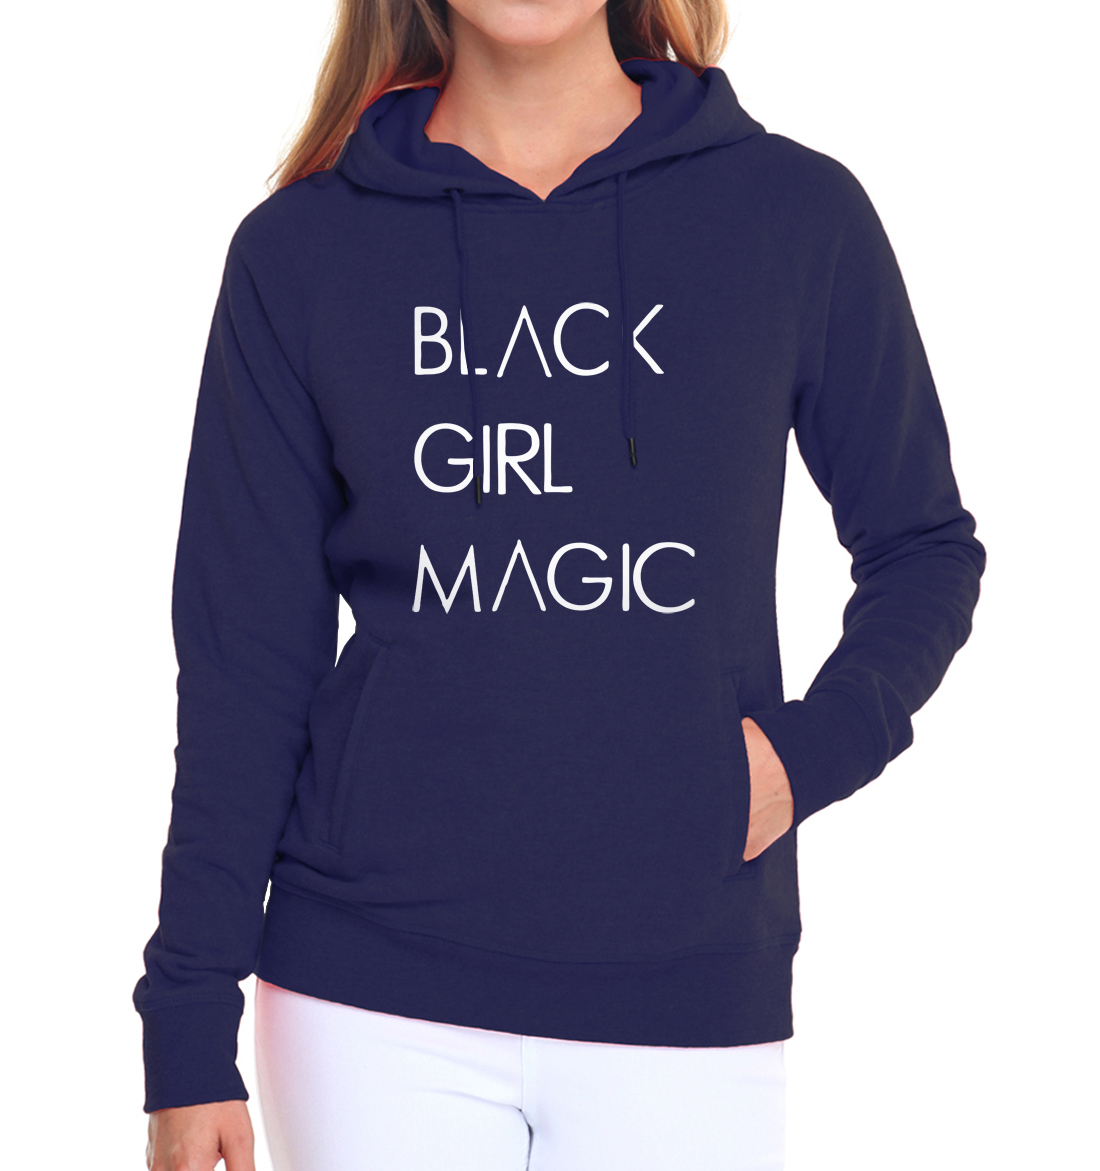 2019 hip-hop sweatshirts harajuku Women BLACK GIRL MAGIC hoodies long sleeve hipster pullovers femme Casual kpop tracksuits 2019